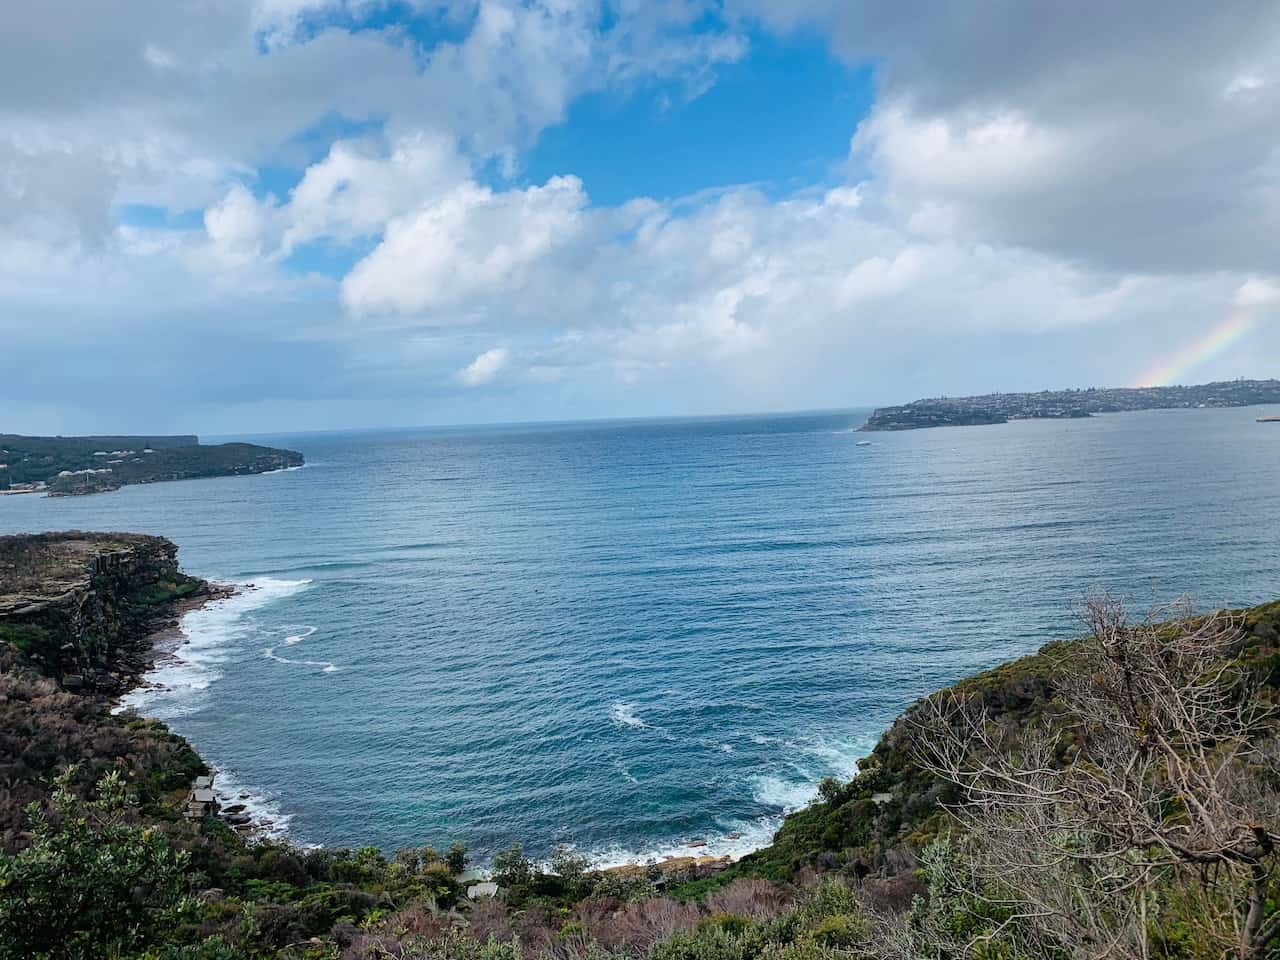 Crater Cove Lookout